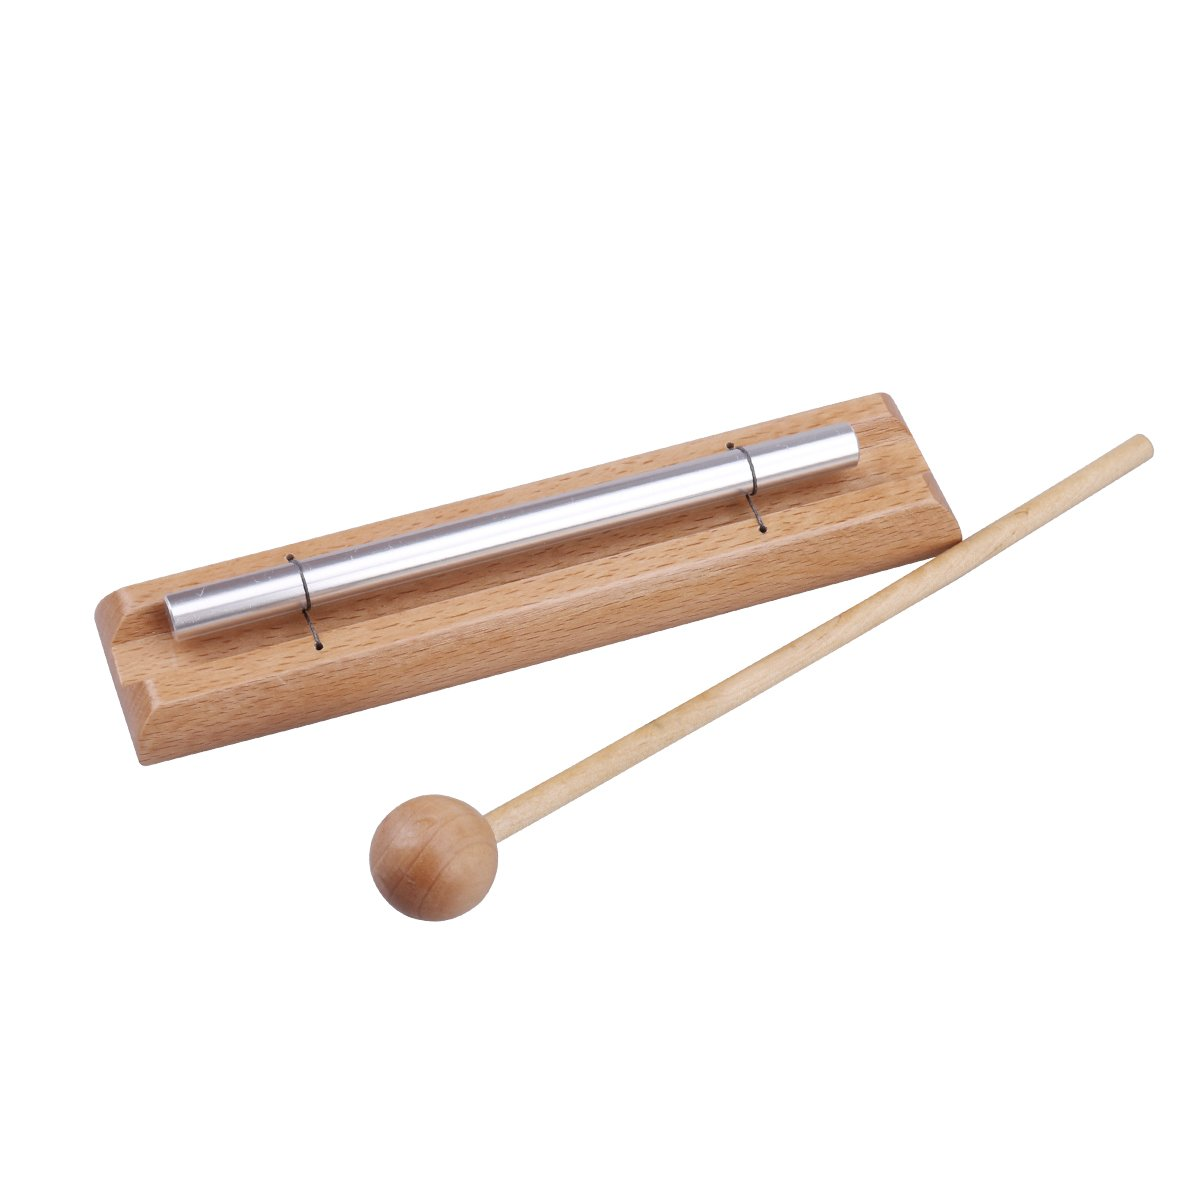 ROSENICE Solo Percussion Instrument with Mallet Musical Chime Toys 1 Set for Children O329H4714W5Q634BV000